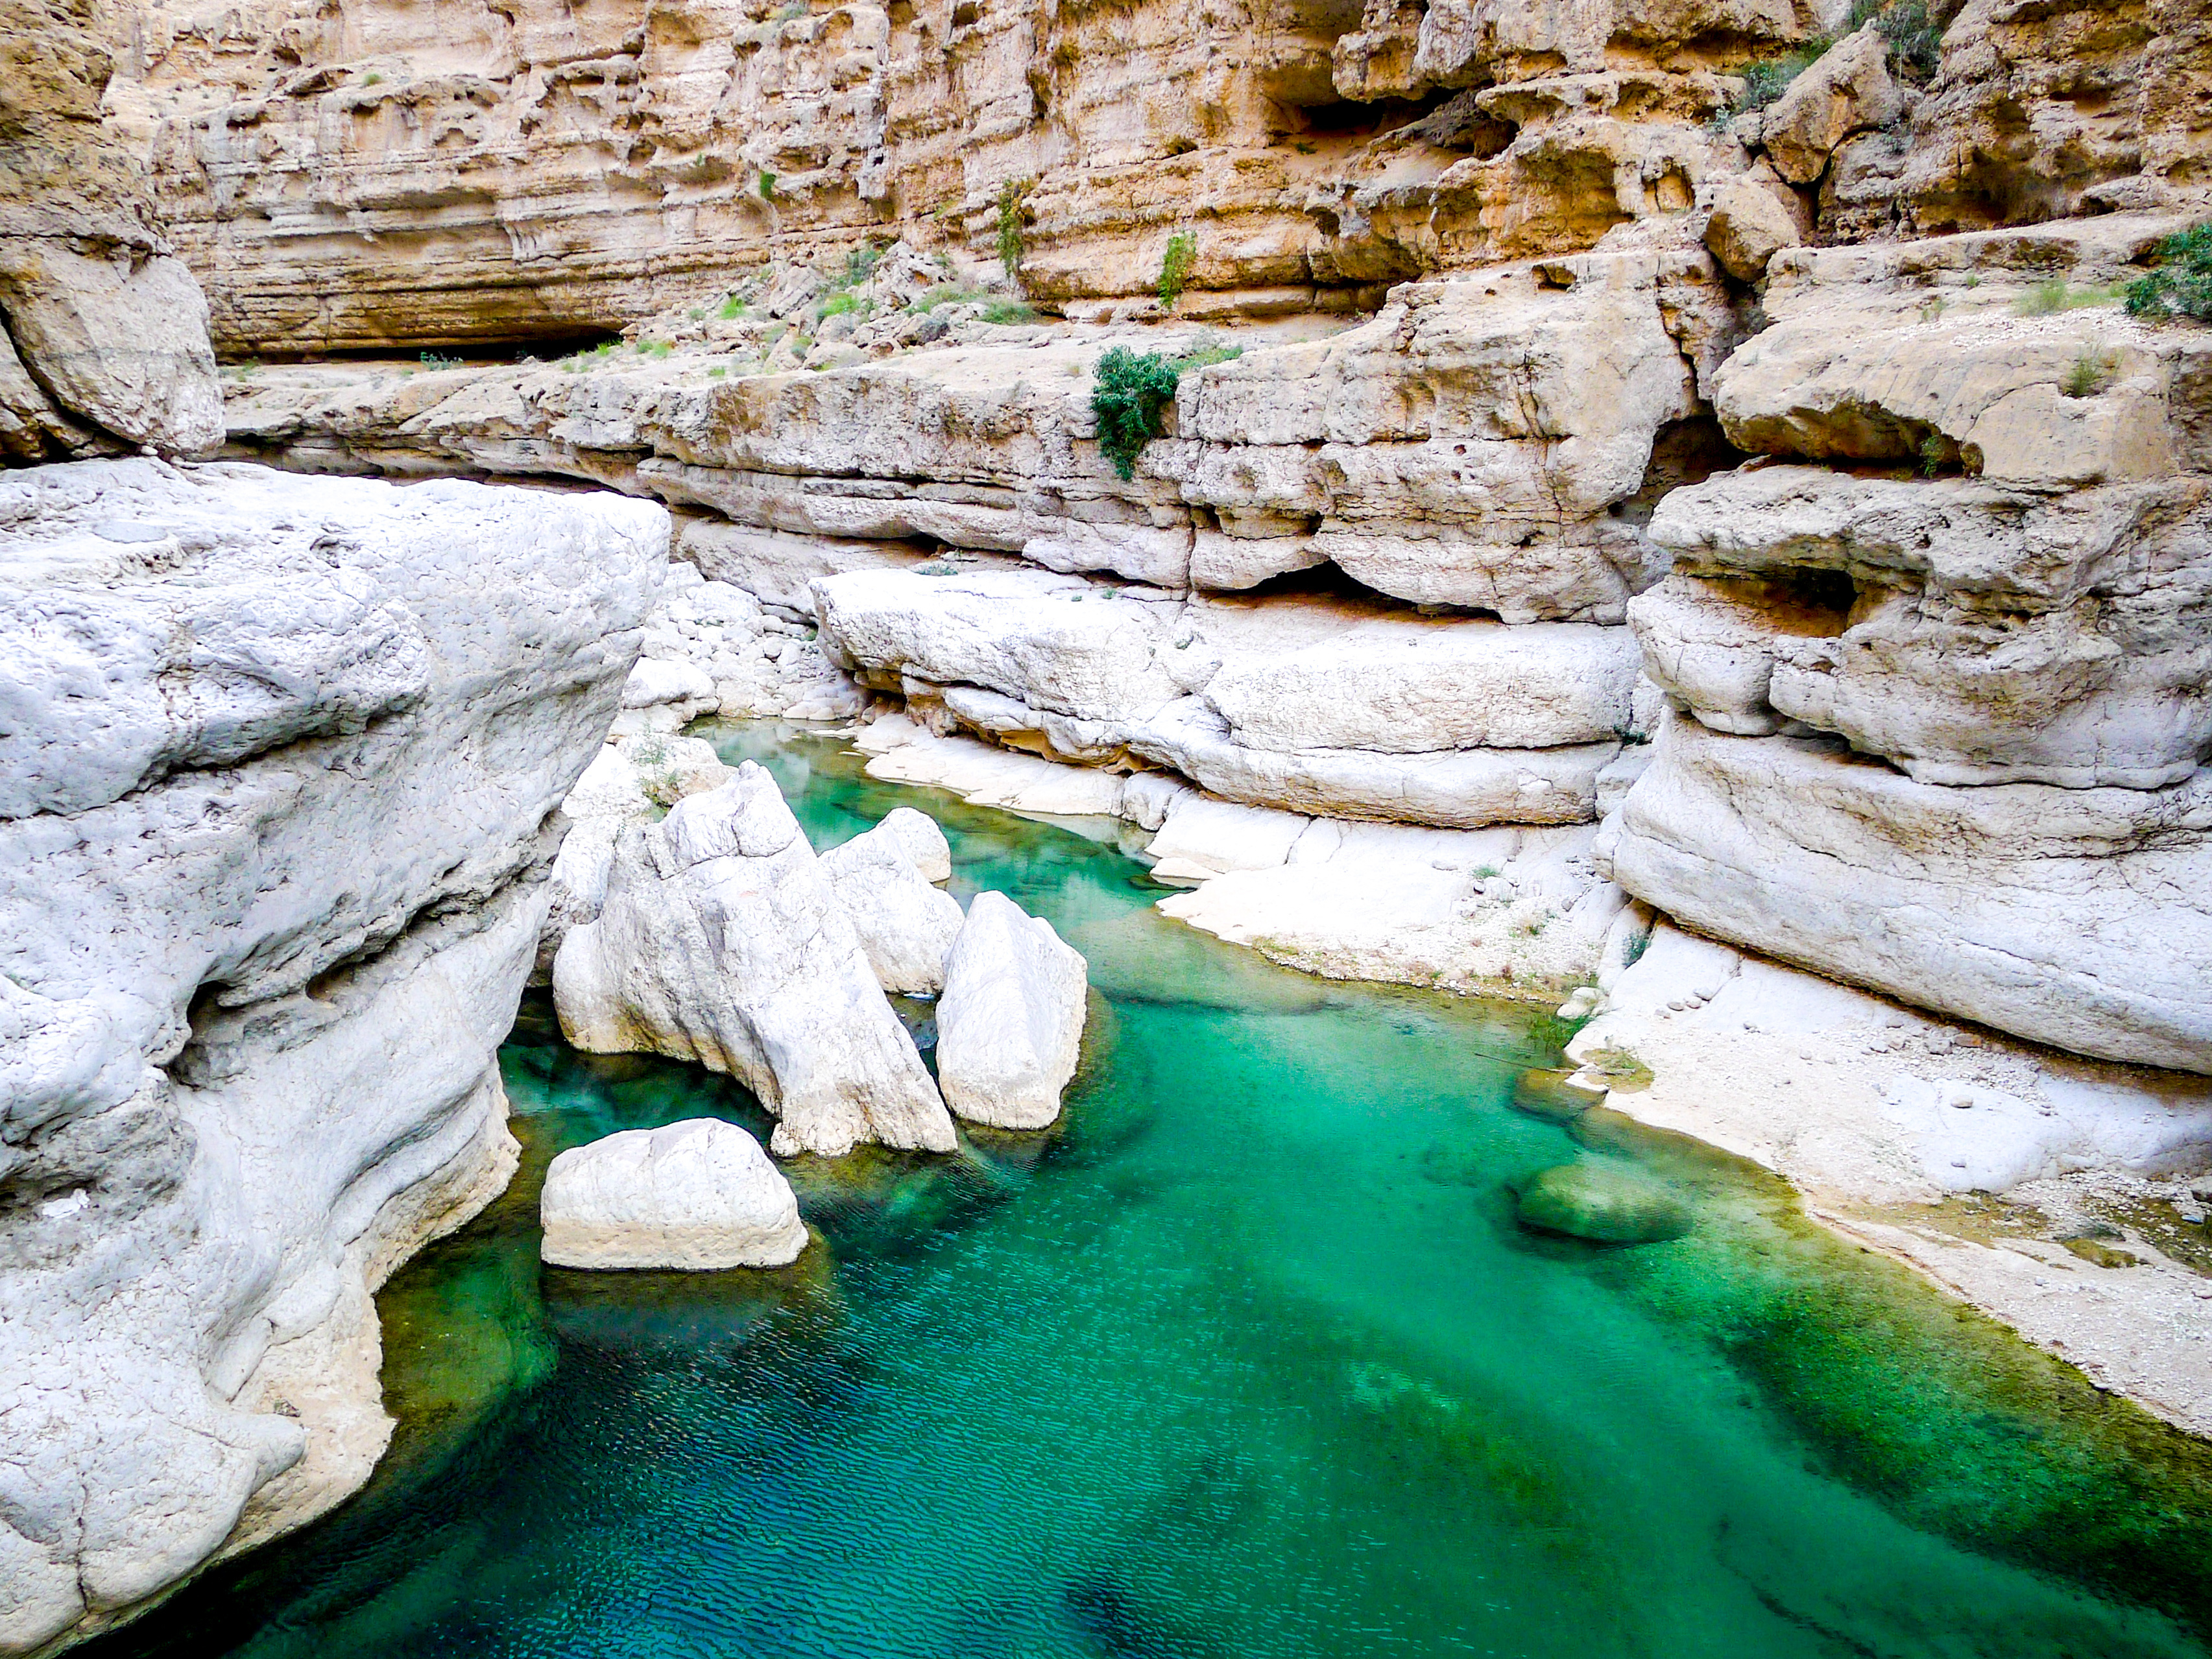 Turquoise blue waters of Wadi Shab, a canyon near Muscat in Oman